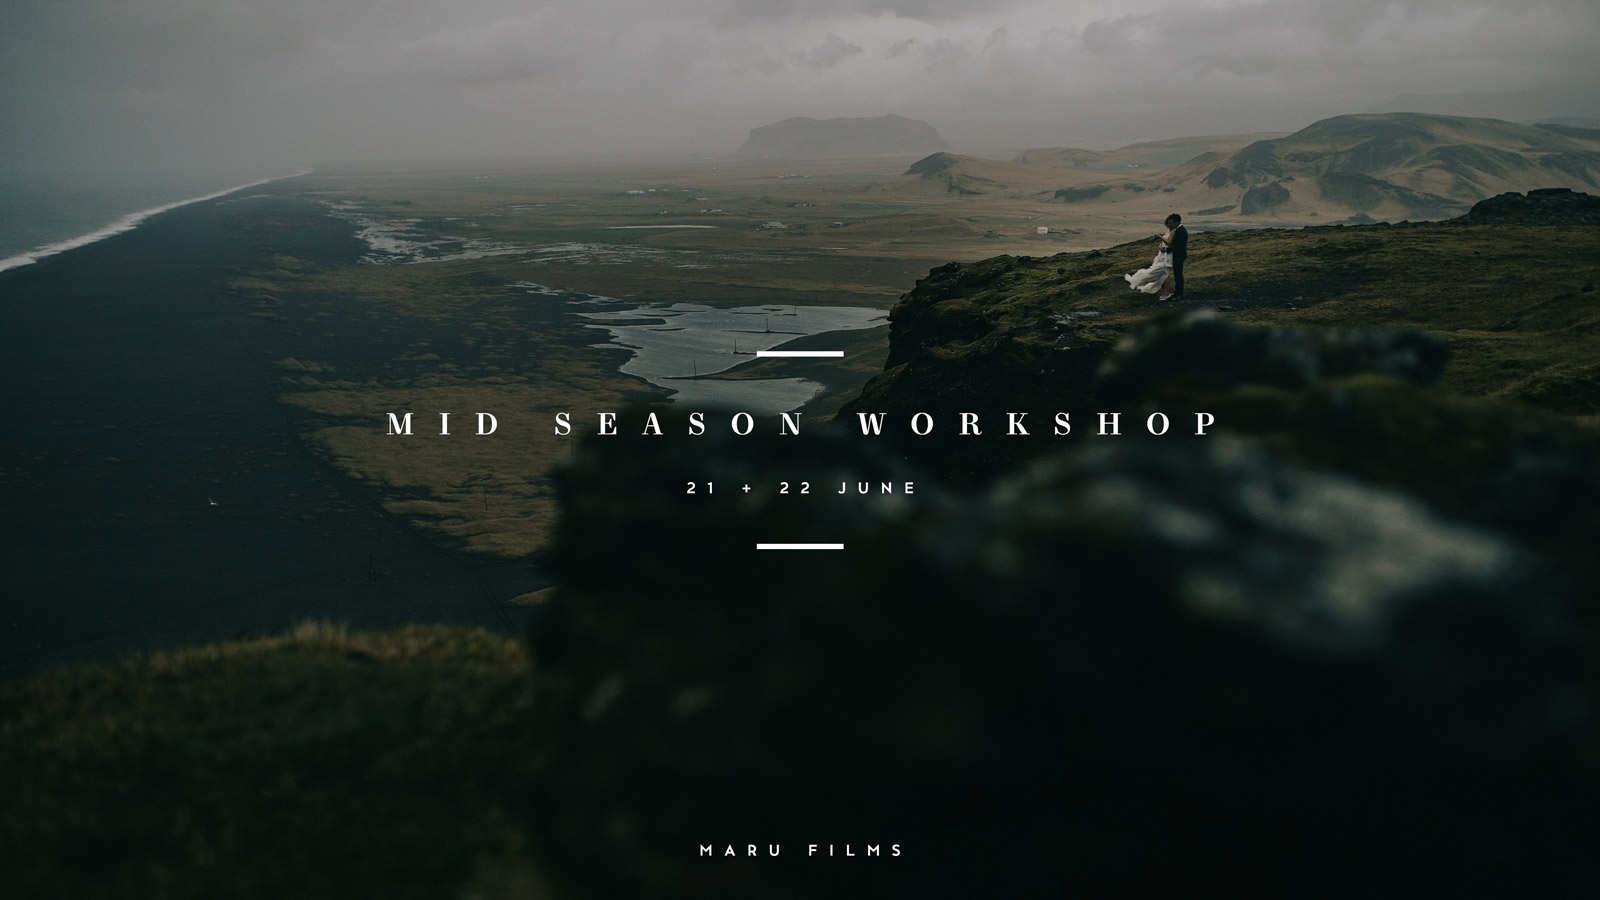 Mid season workshop 21+22 June